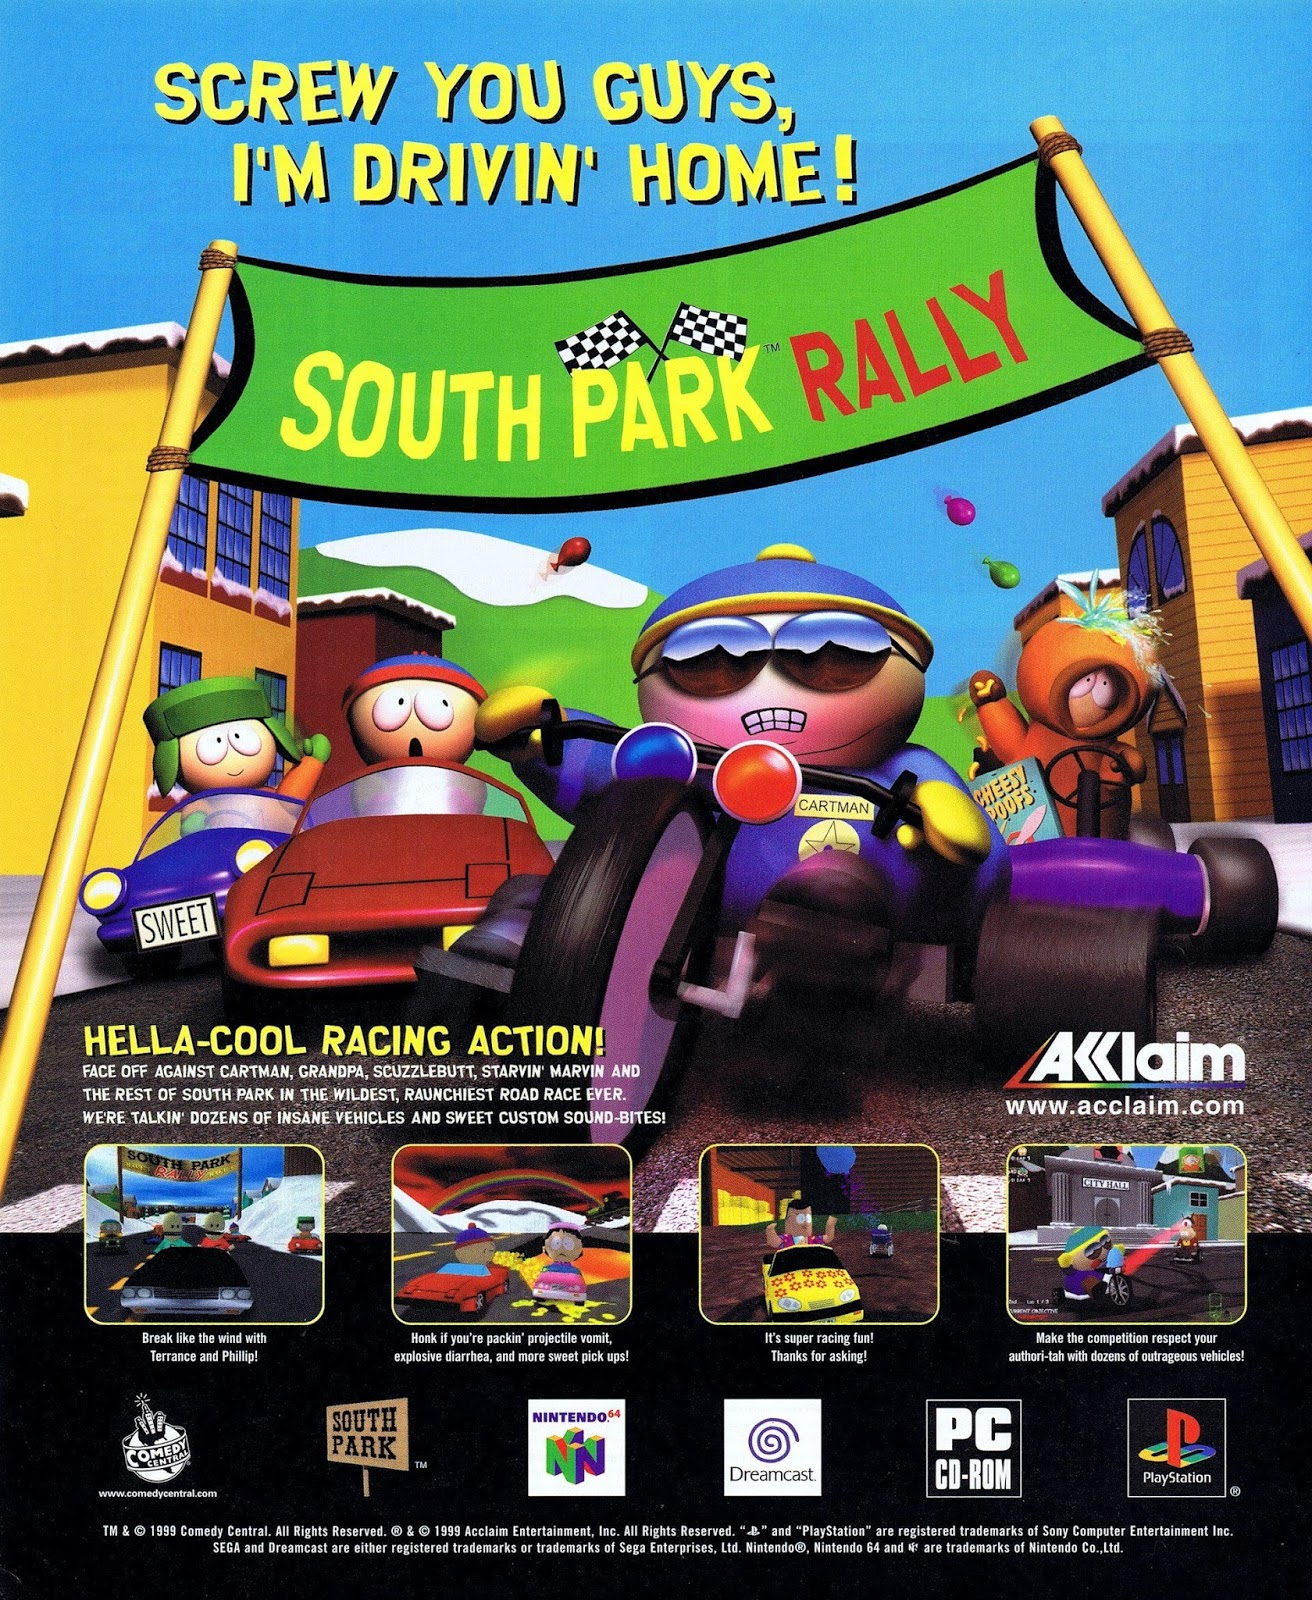 South Park Rally PC MODS: About